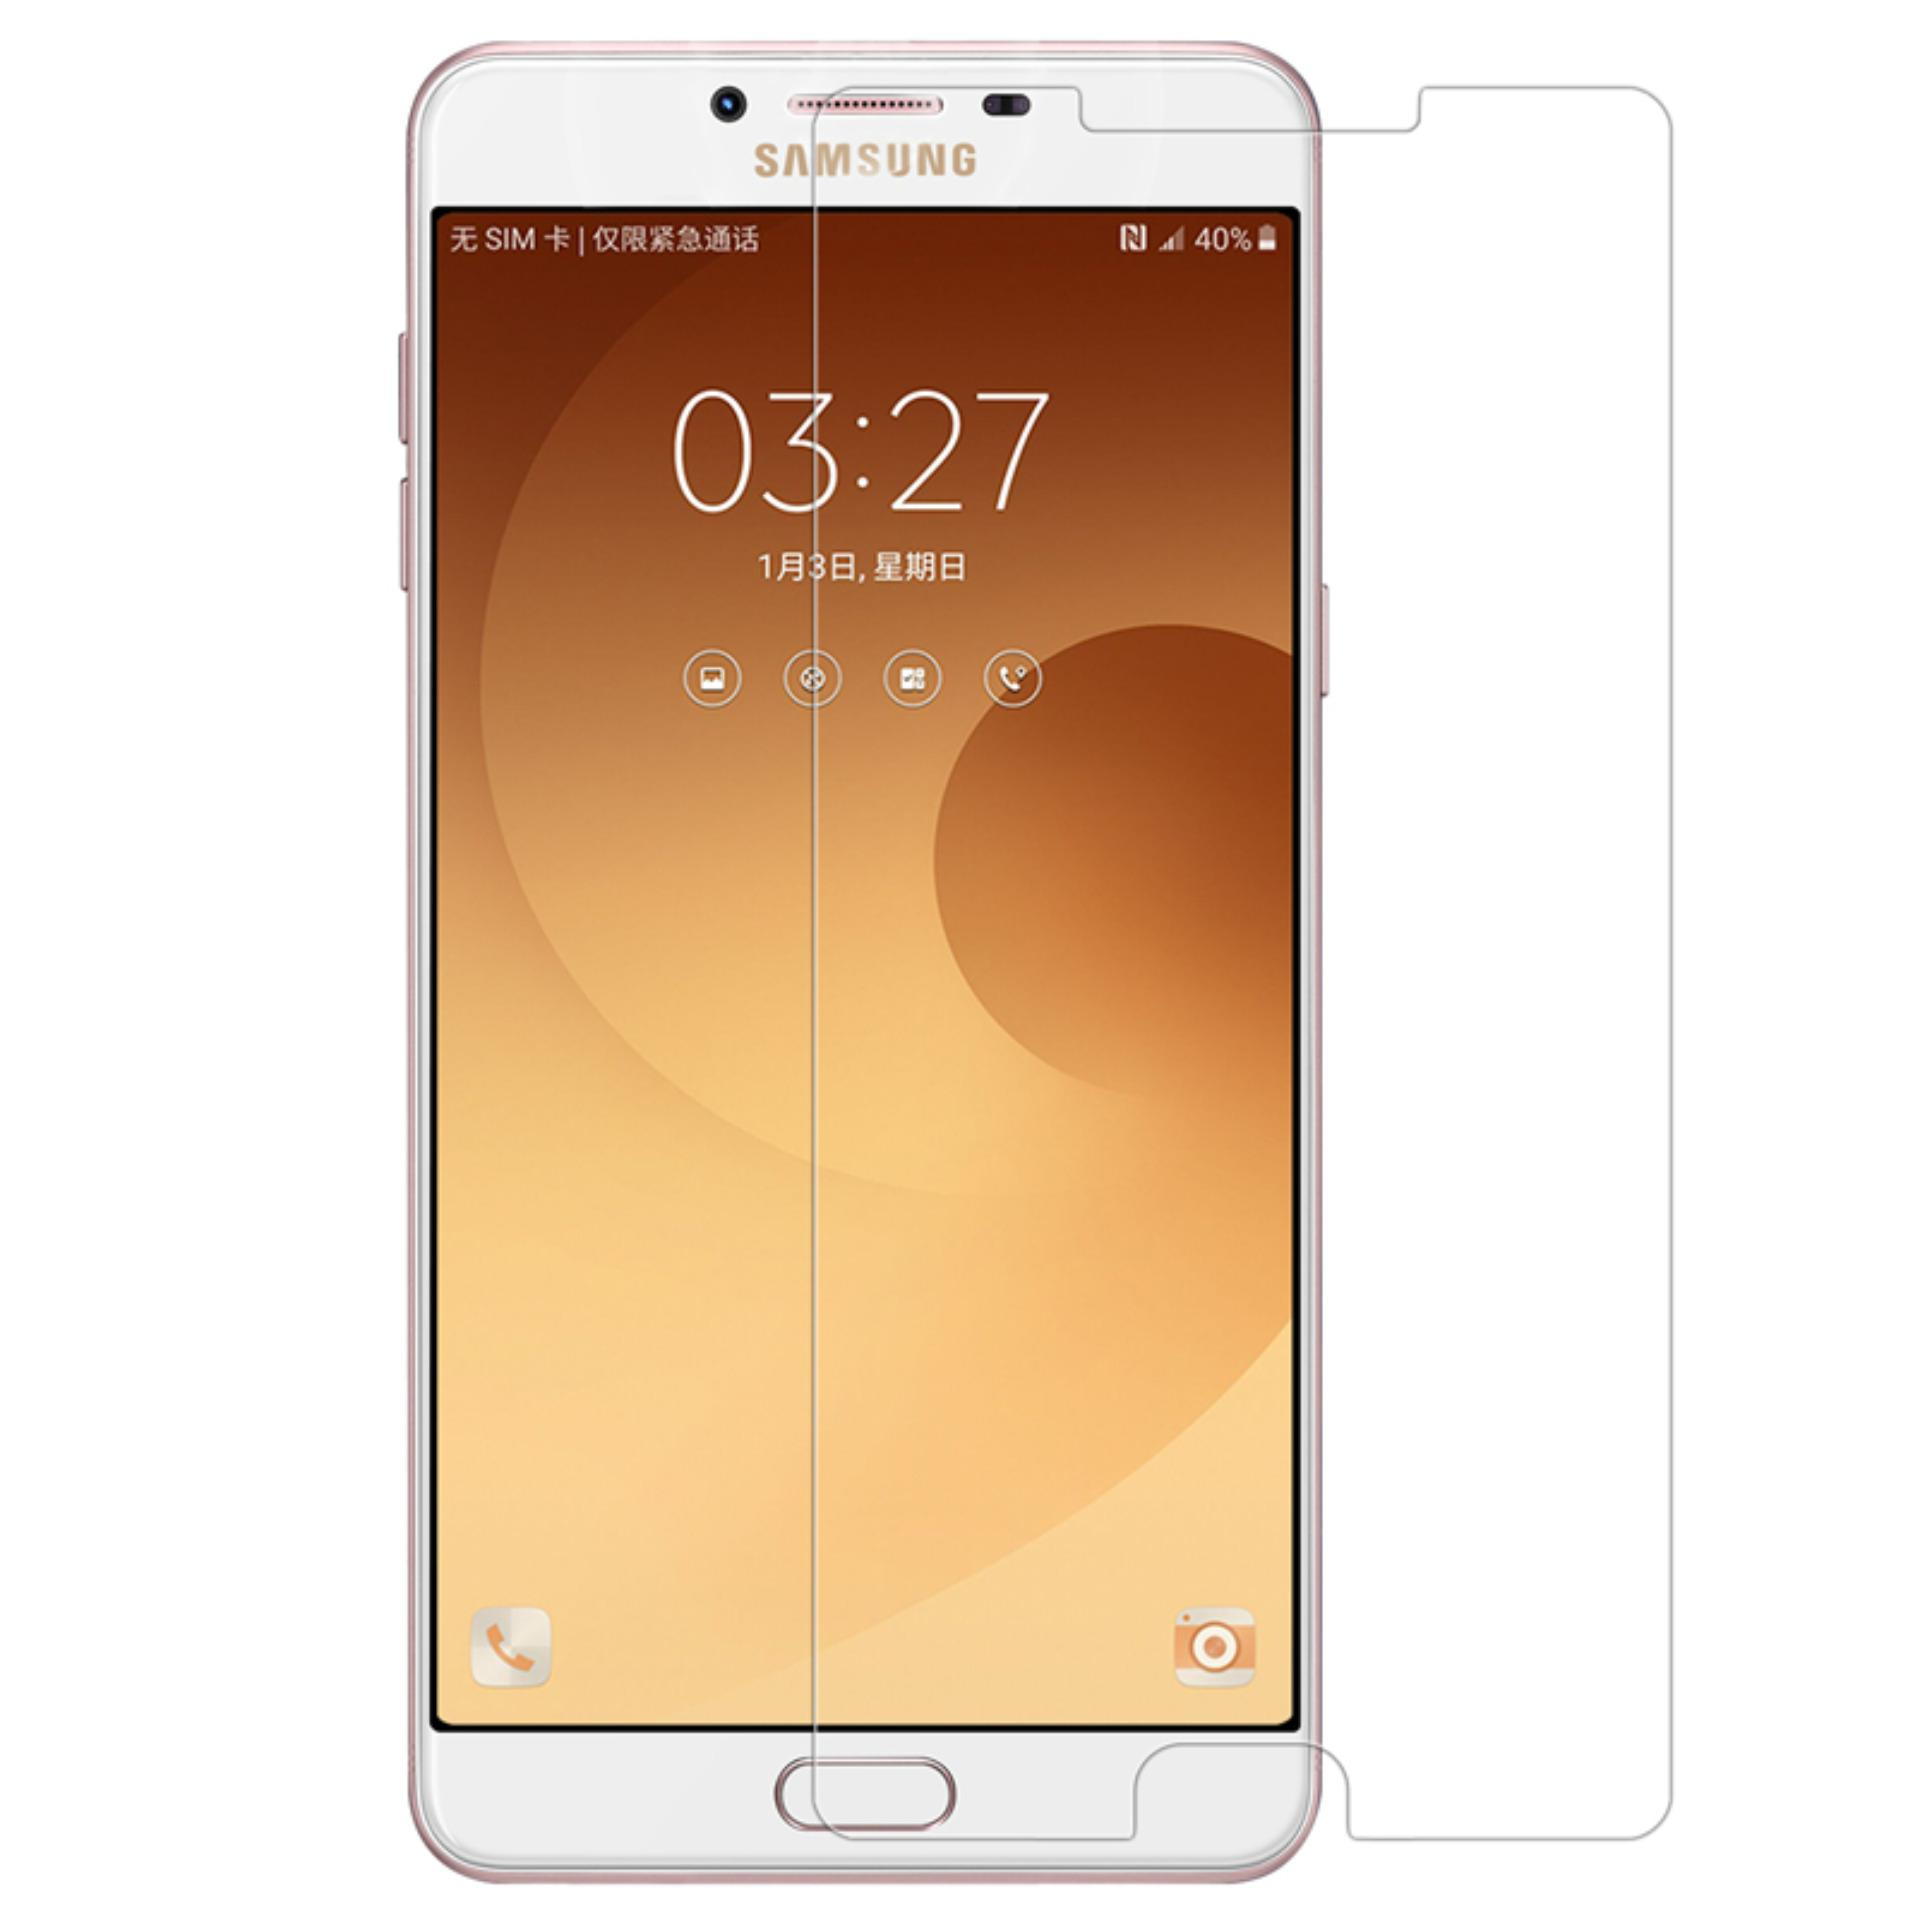 Vn Samsung Galaxy C9 / Pro Tempered Glass 9H Screen Protector 0.32mm - Transparan .